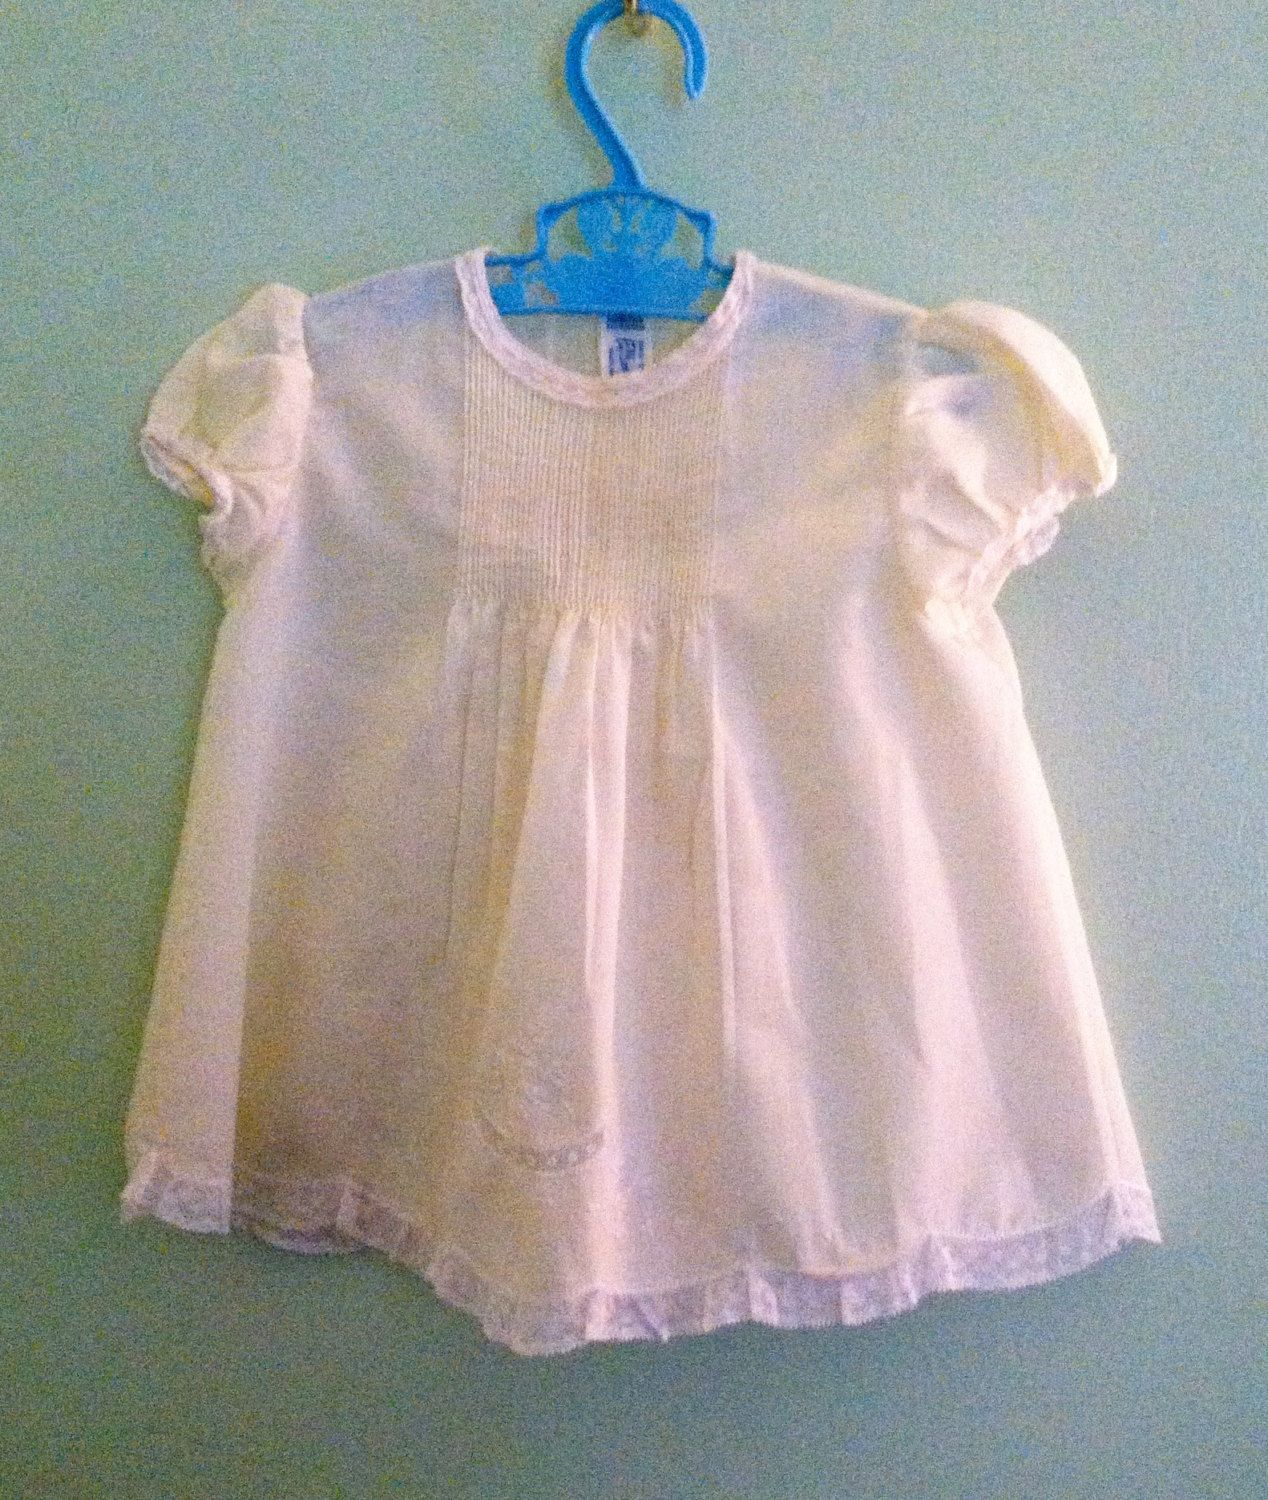 Vintage Baby Dress Feltman Brothers Mid Century Cotton Blend